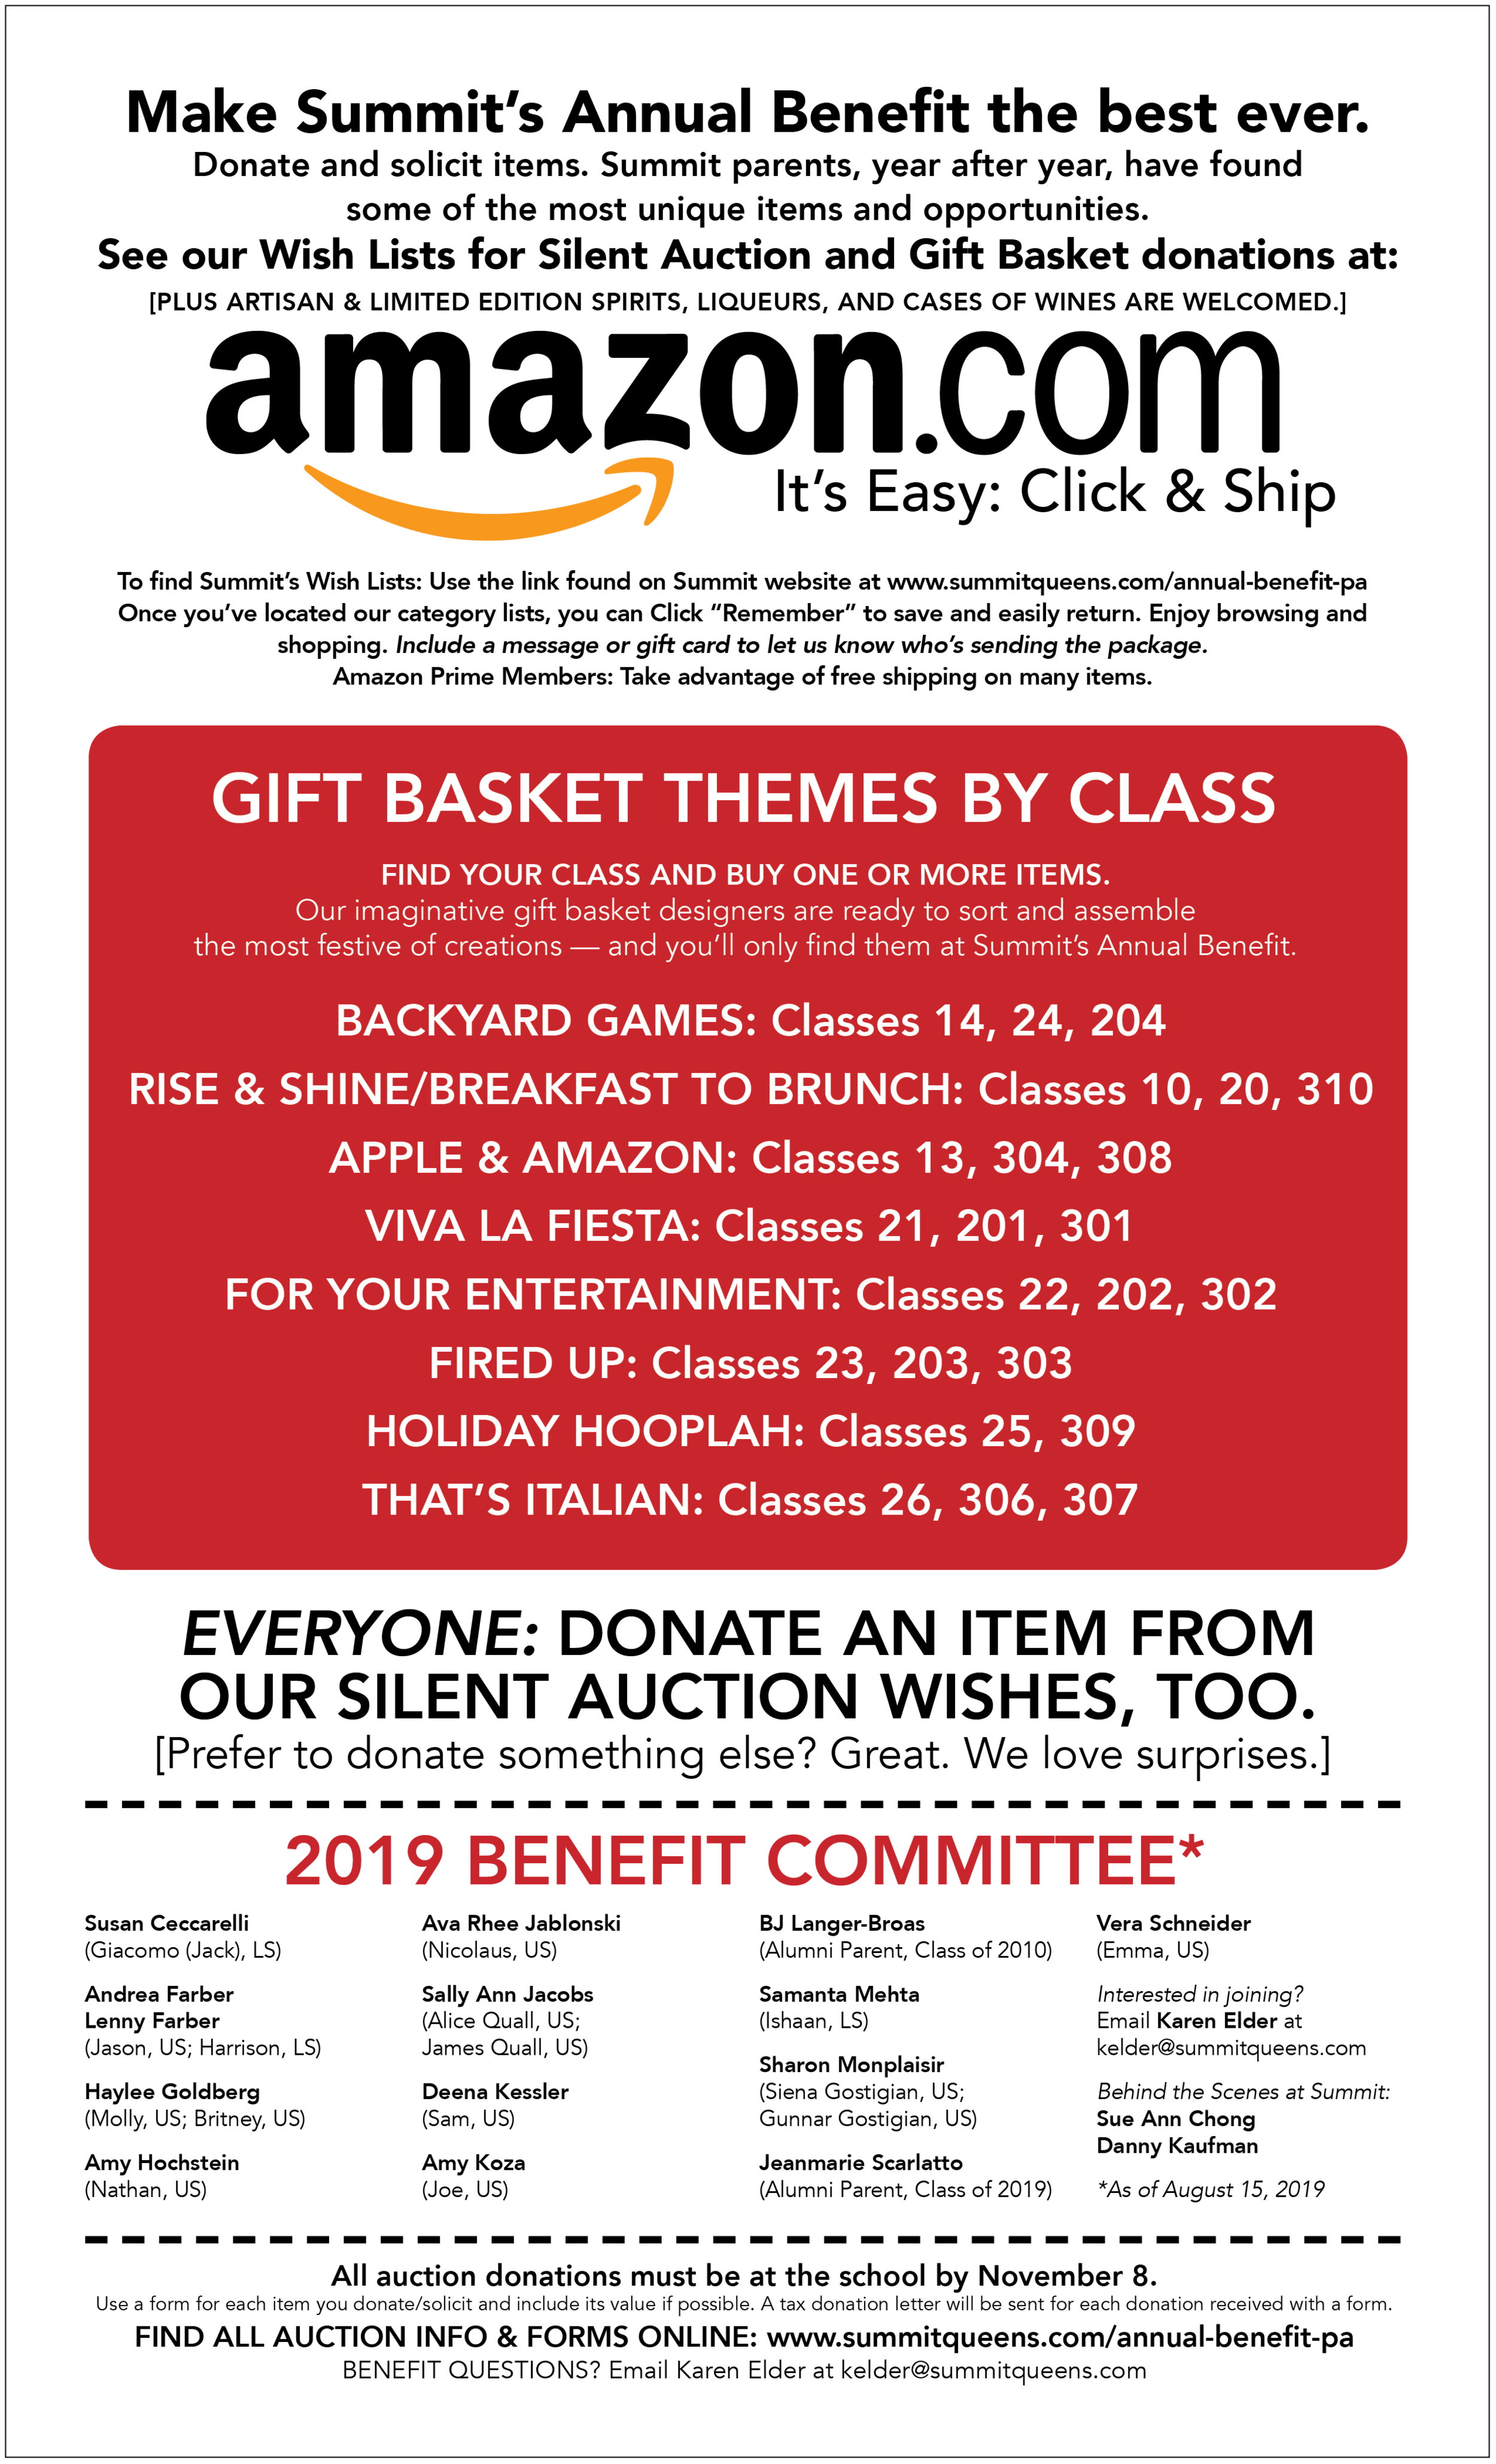 Summit_2019AB_BenefitFlyer11x14_BACK_FINAL_R_081219.png